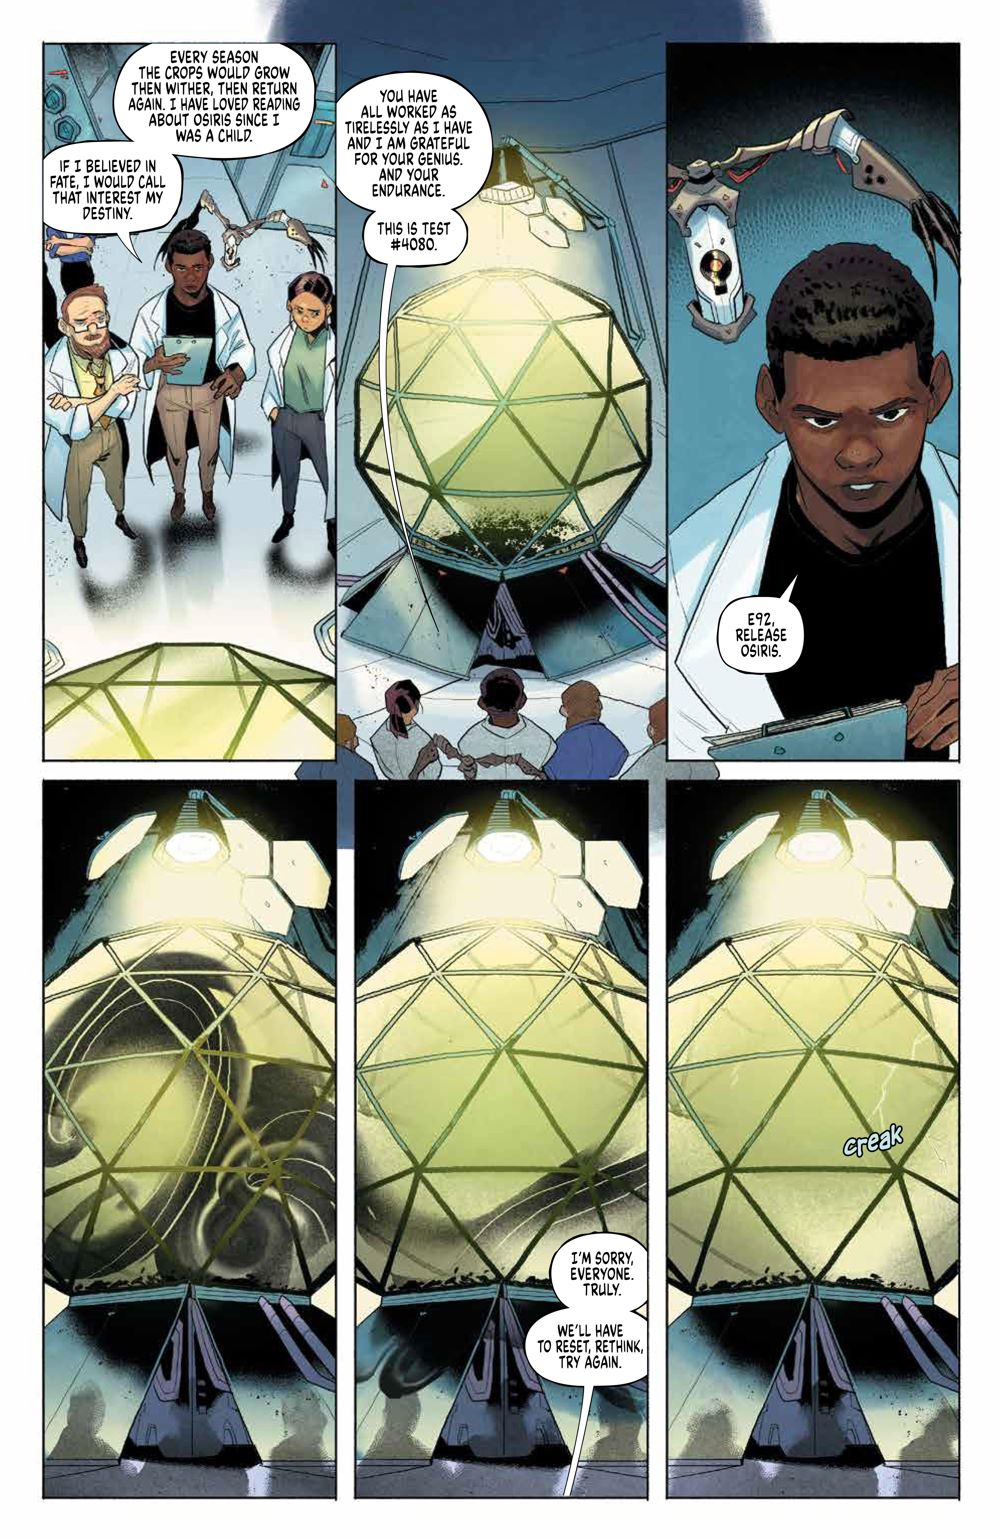 Eve_002_PRESS_5-1 ComicList Previews: EVE #2 (OF 5)